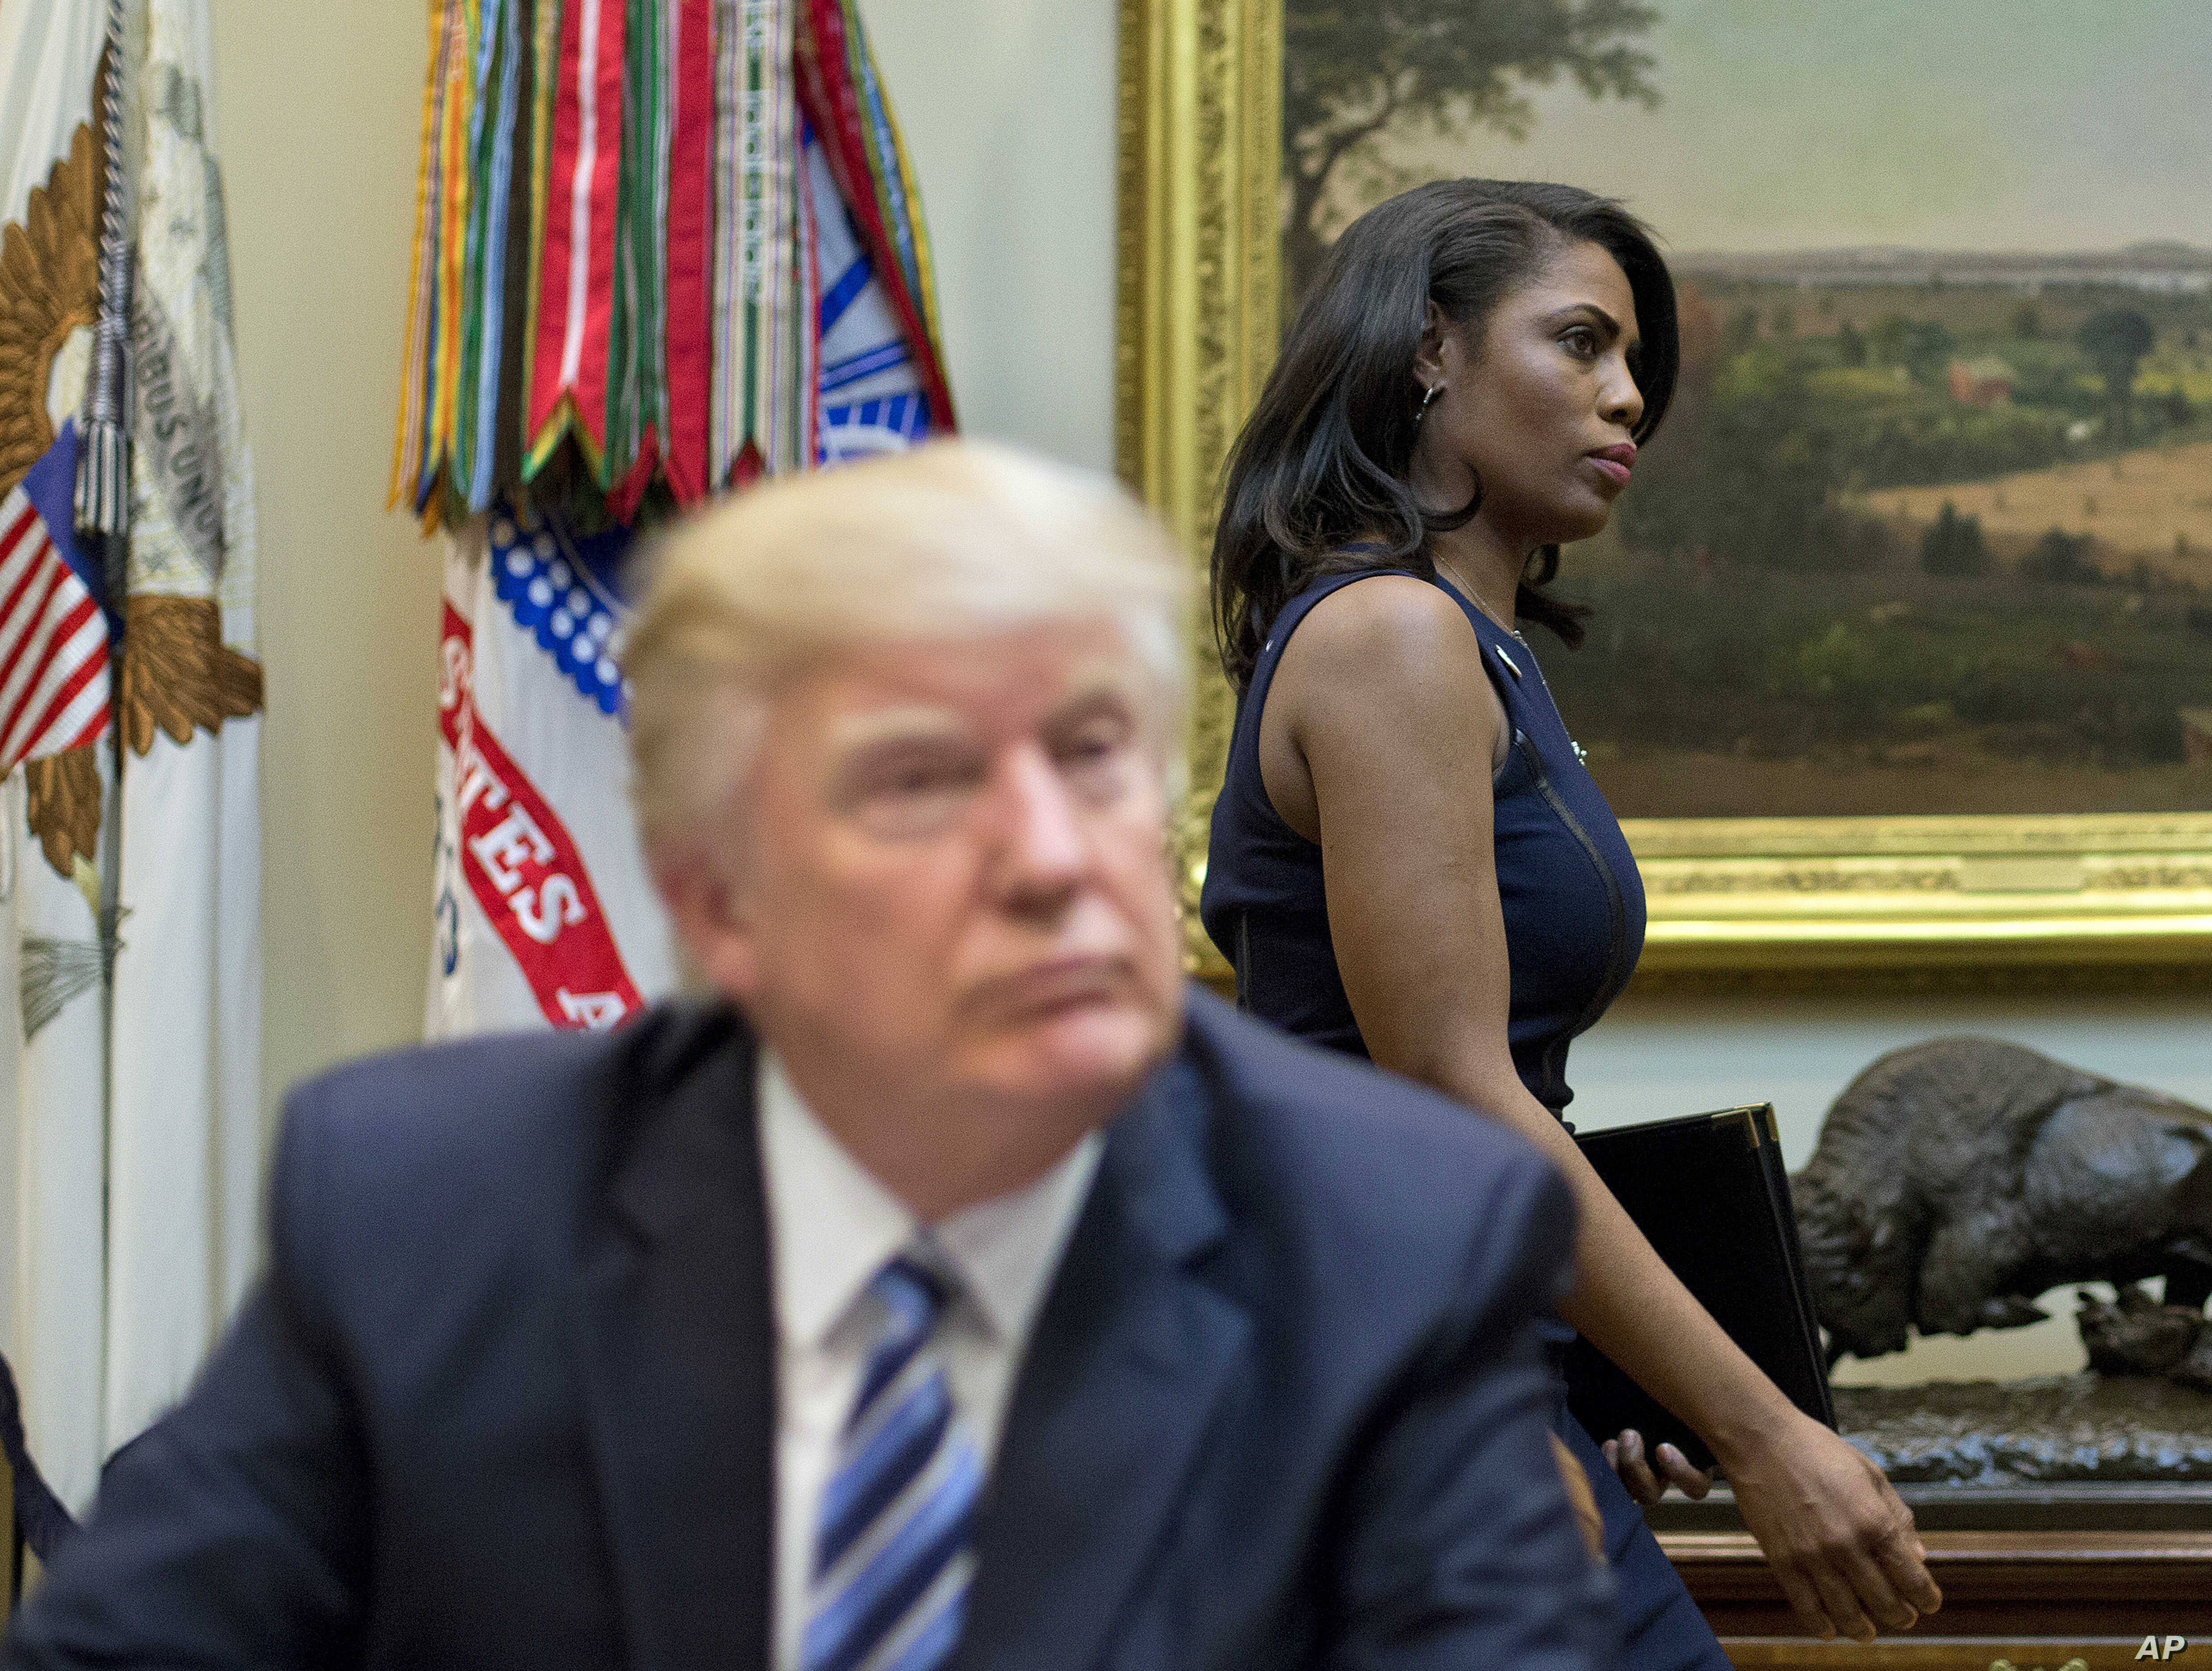 FILE - In this March 12, 2017 file photo, White House Director of communications for the Office of Public Liaison Omarosa Manigault, right, walks past President Donald Trump during a meeting on healthcare in the White House.